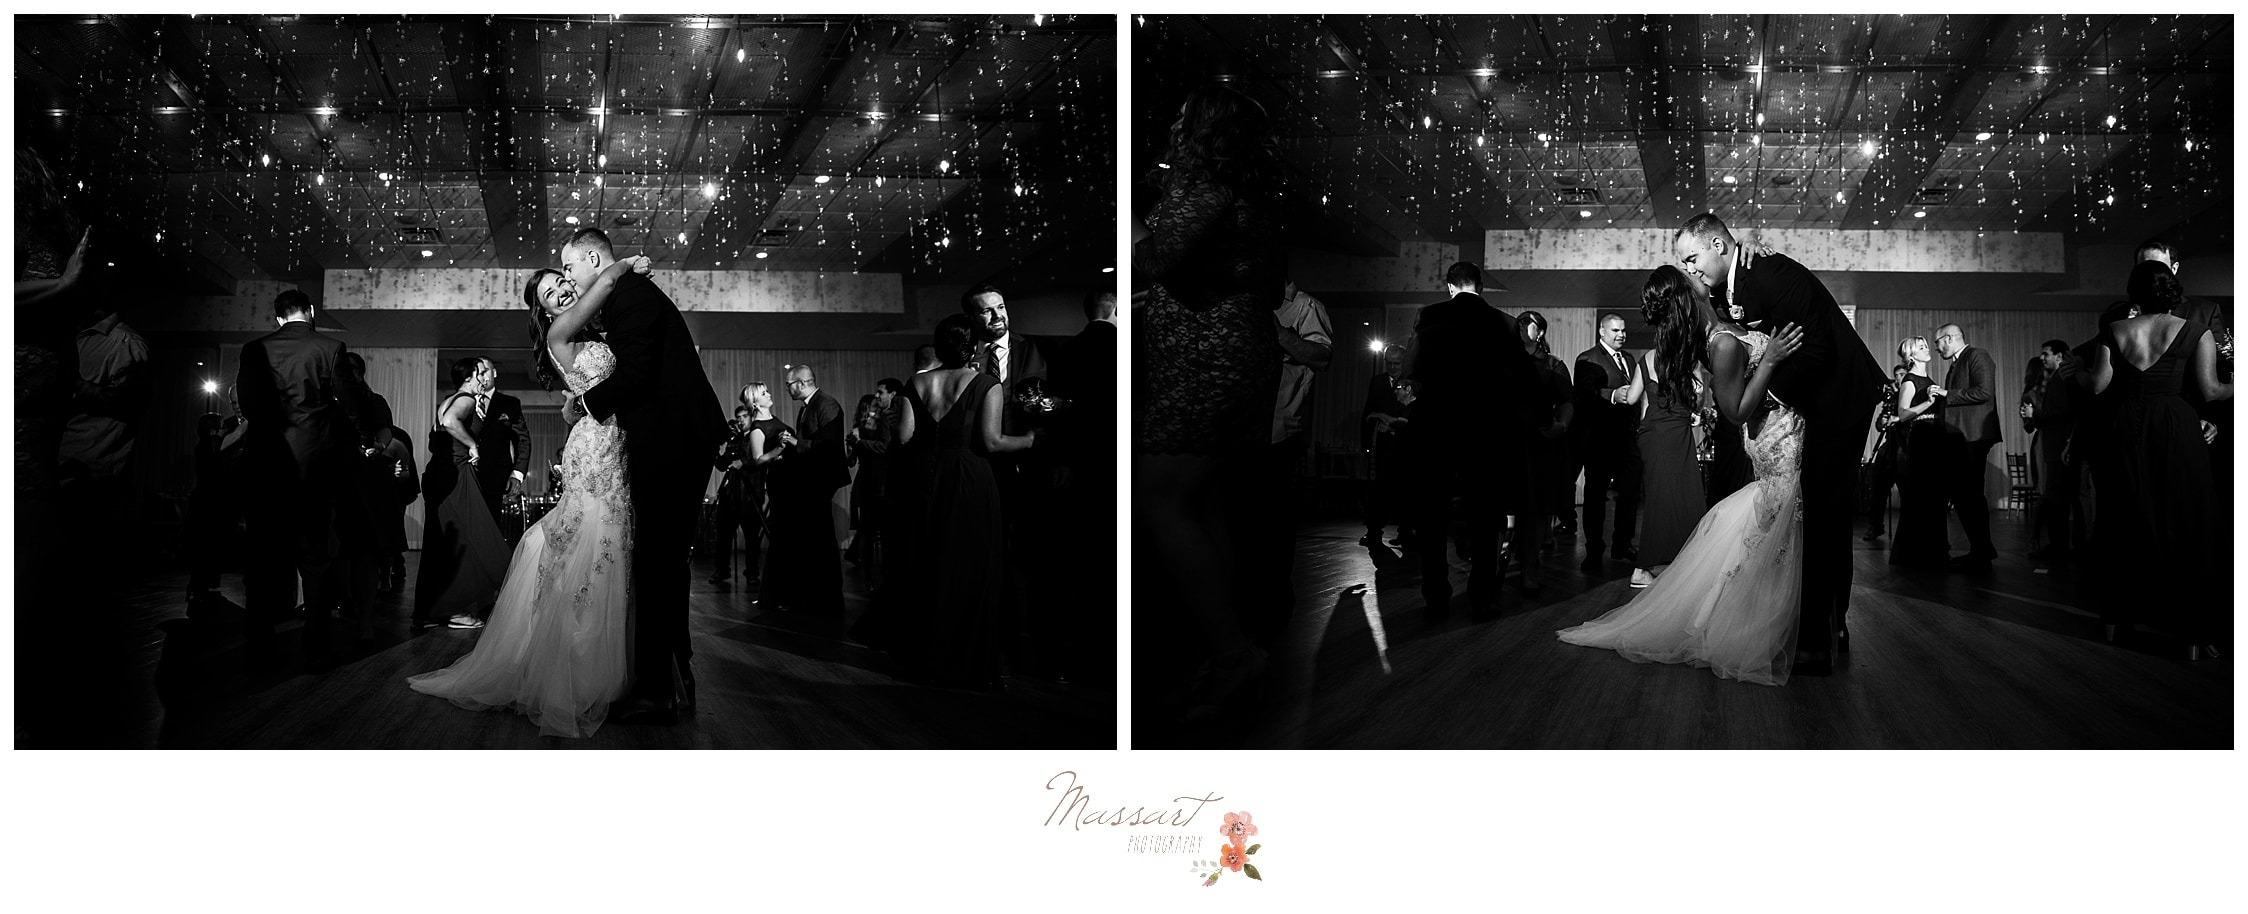 Black and white portraits of the bride and groom's first dance at their wedding reception surrounded by friends and family photographed by Massart Photography Rhode Island